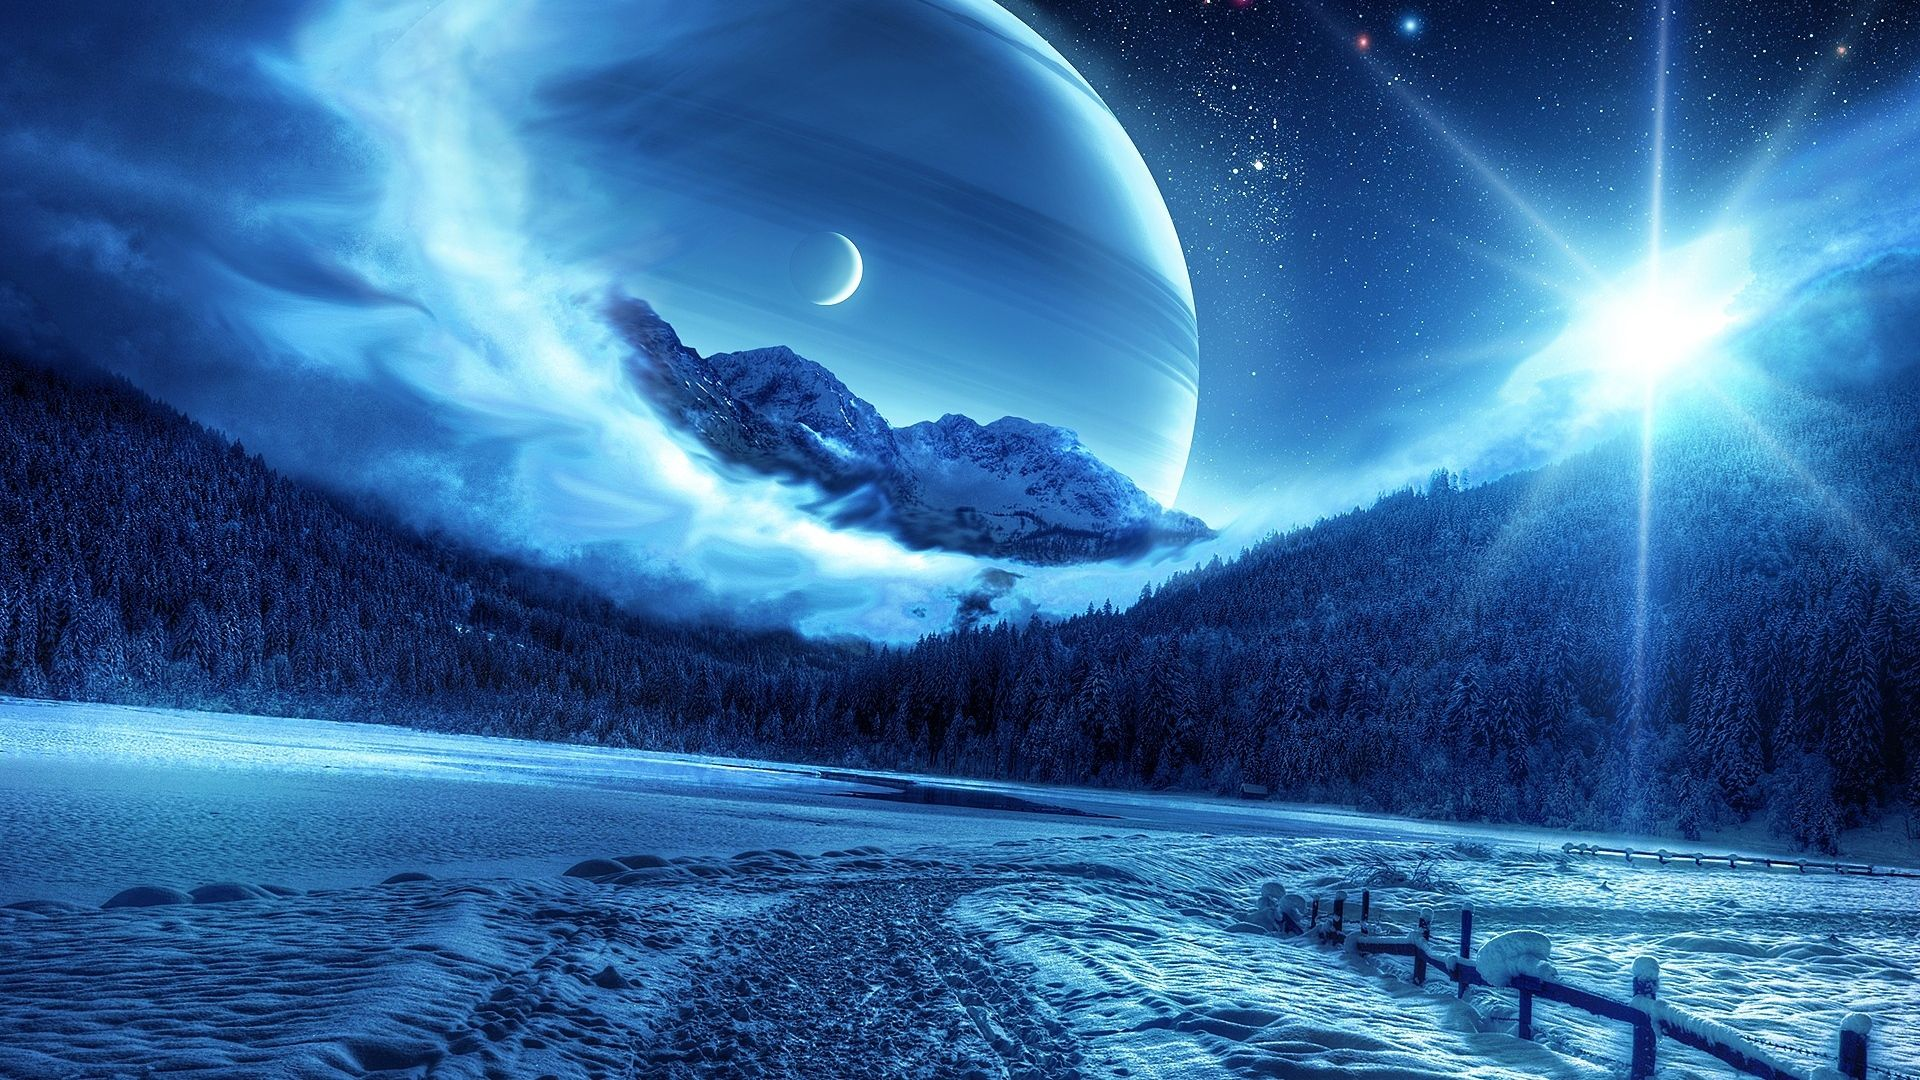 1920x1080 Wallpaper Winter Night Mountains Road Planet Fantastic Landscape Scenery Wallpaper Anime Scenery Wallpaper Winter Scenery